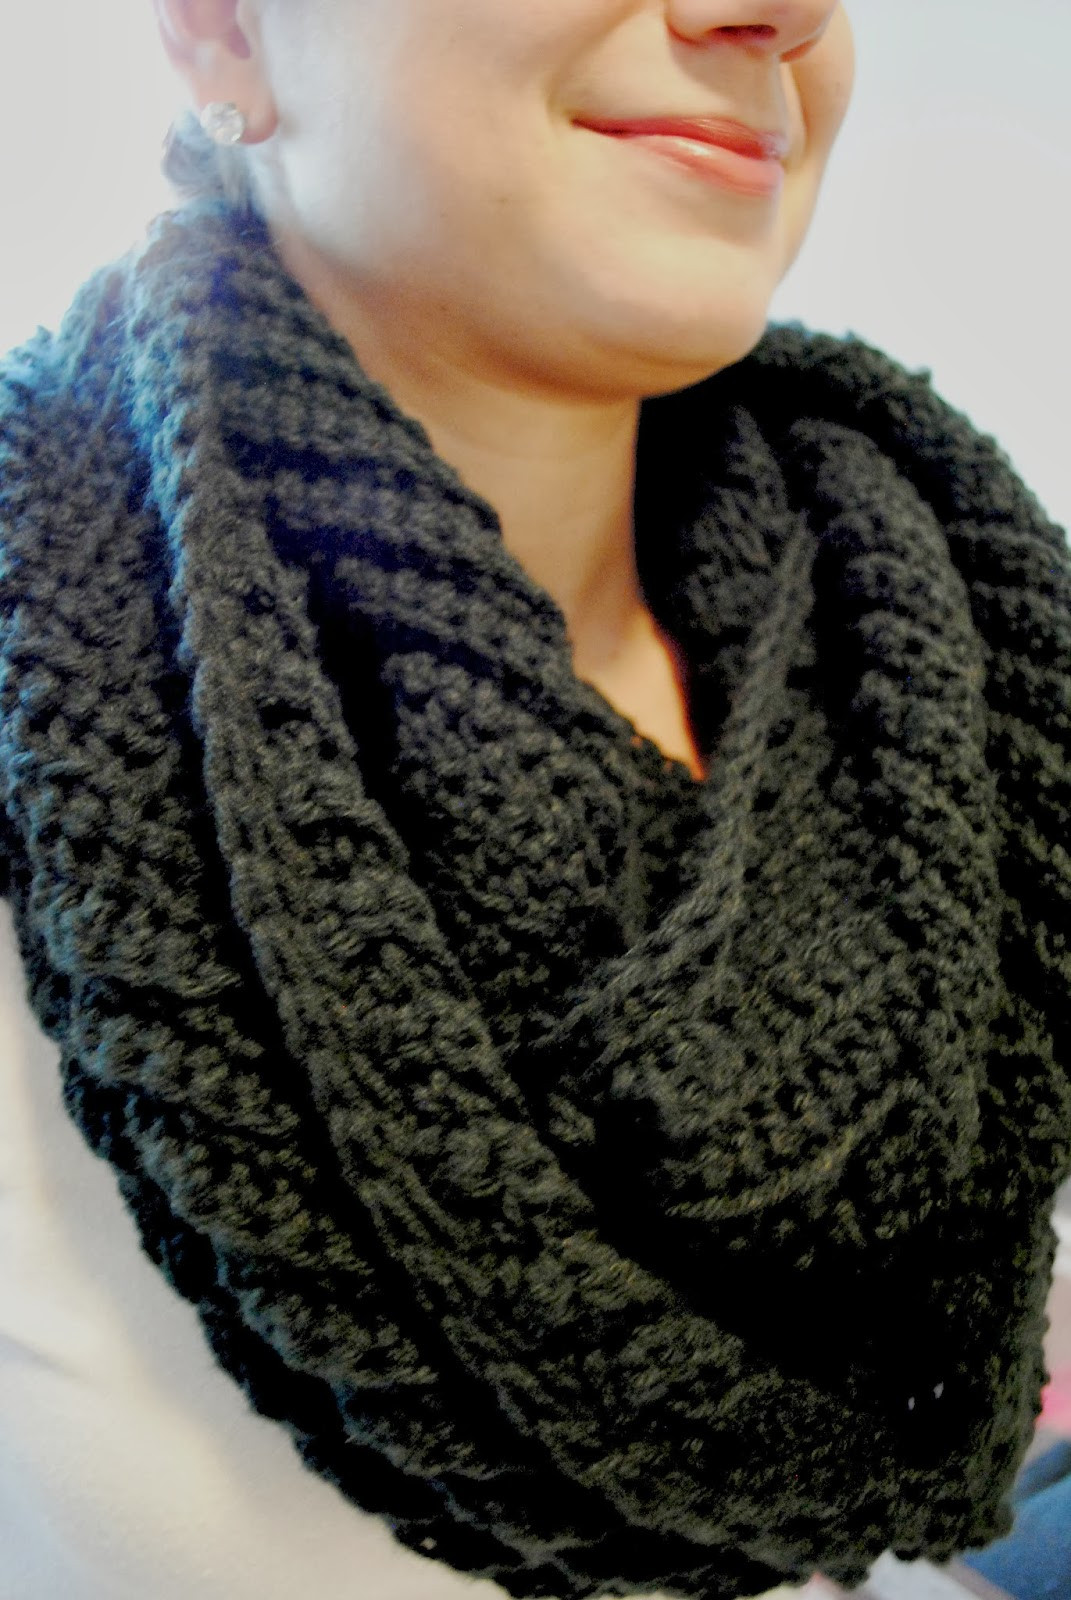 Crochet Infinity Scarves Inspirational Loee M Subtle Chevron Infinity Scarf Of New 44 Photos Crochet Infinity Scarves